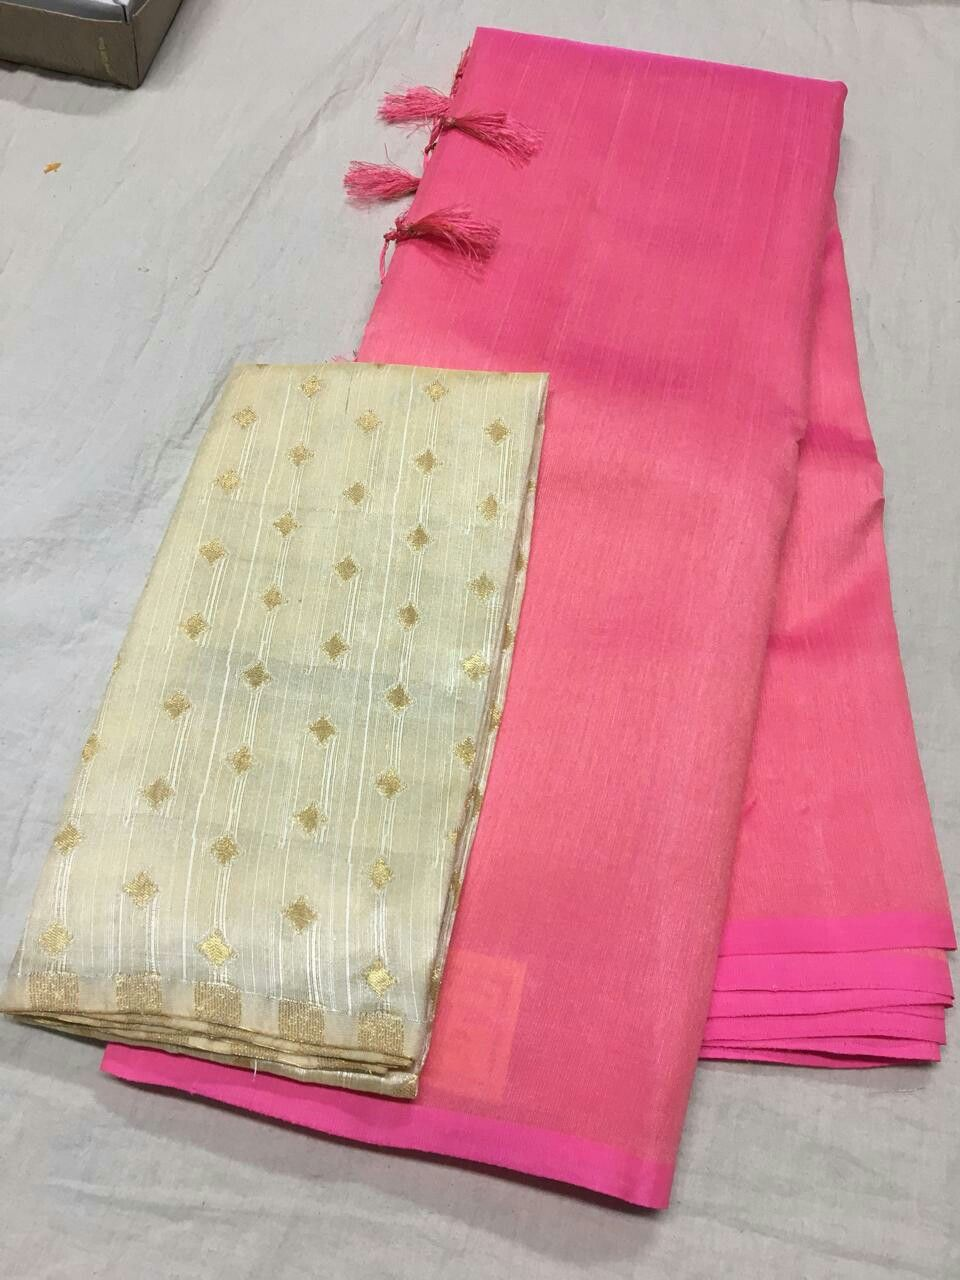 d2b643b285770 Pure raw silk dupian plain saree N heavy blouse 2400+  Order what s app  7093235052